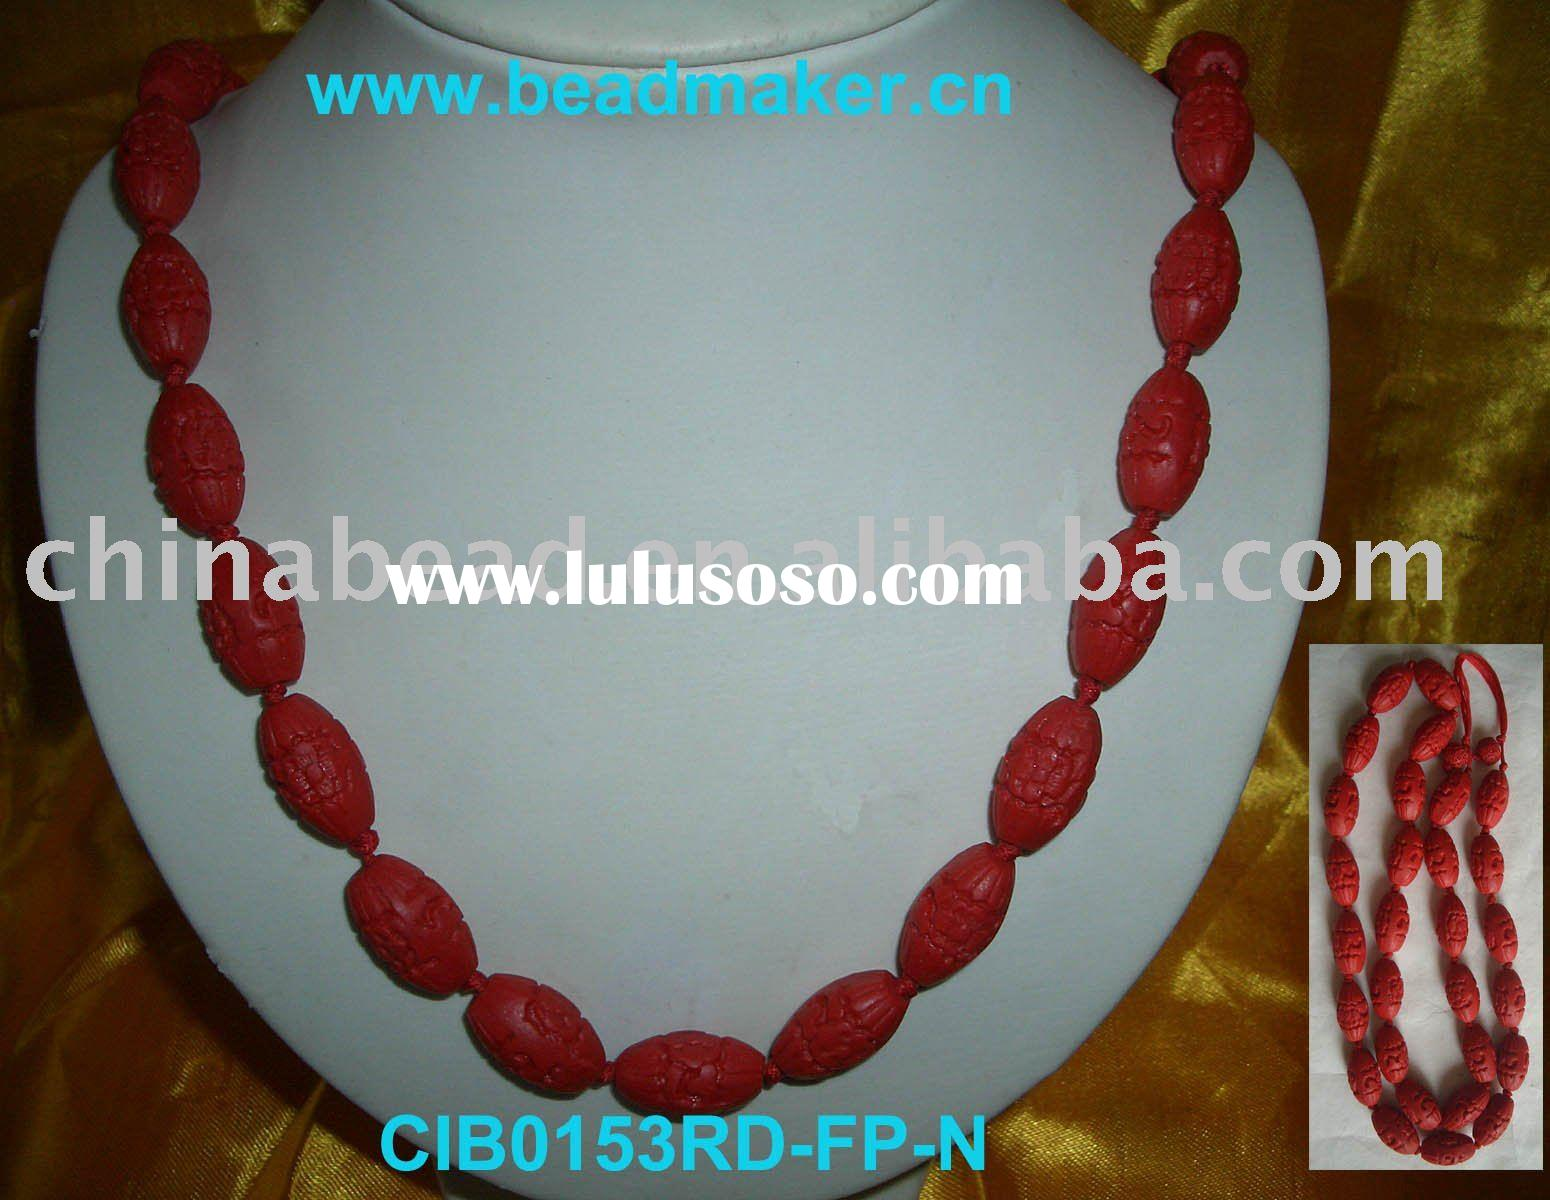 Wholesale fashion necklace jewelry necklace red color cinnabar bead necklace with Chinese knots